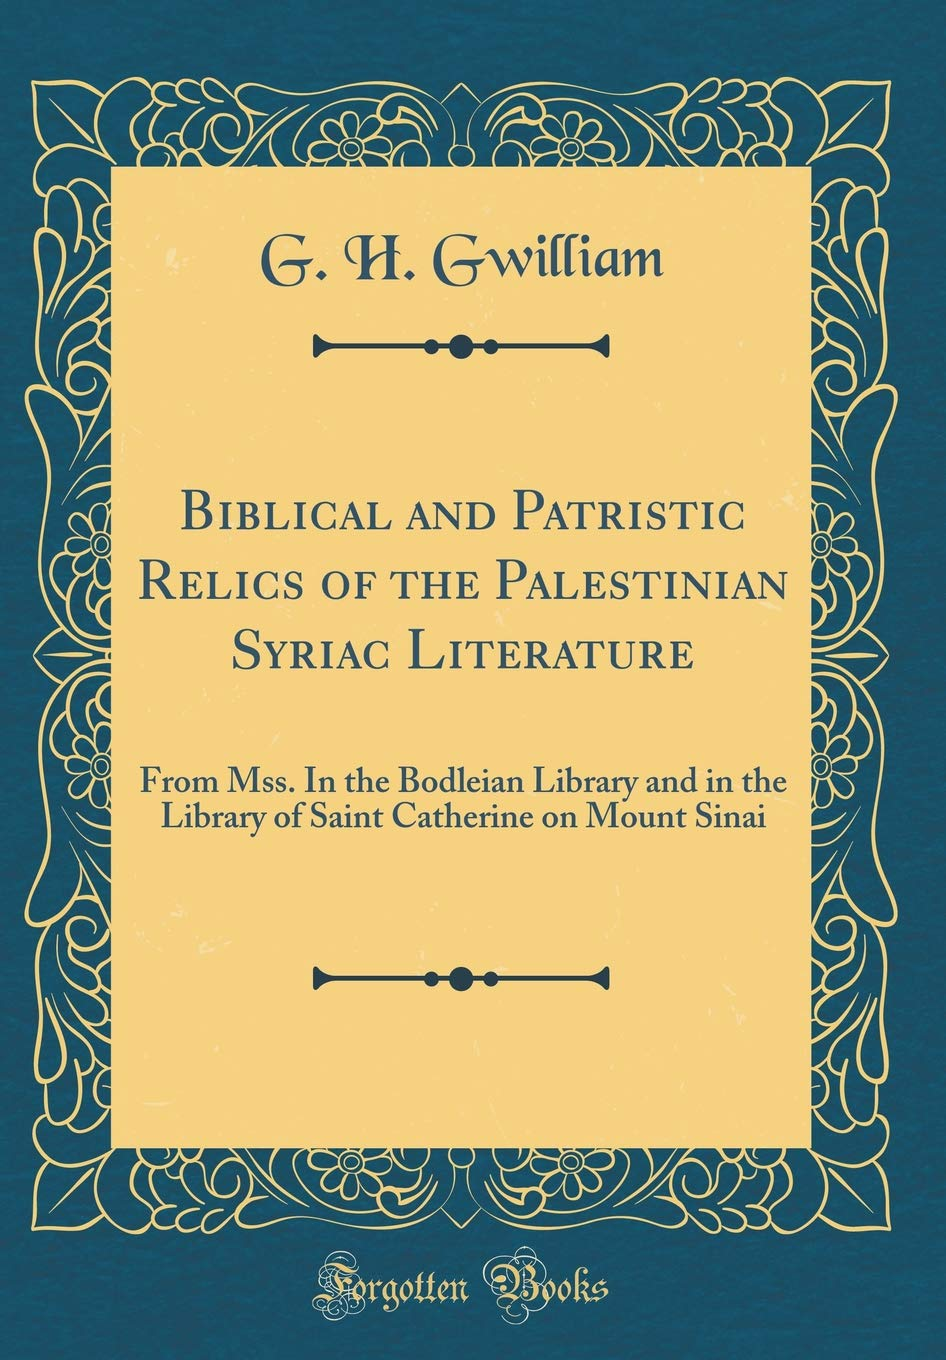 Biblical and Patristic Relics of the Palestinian Syriac